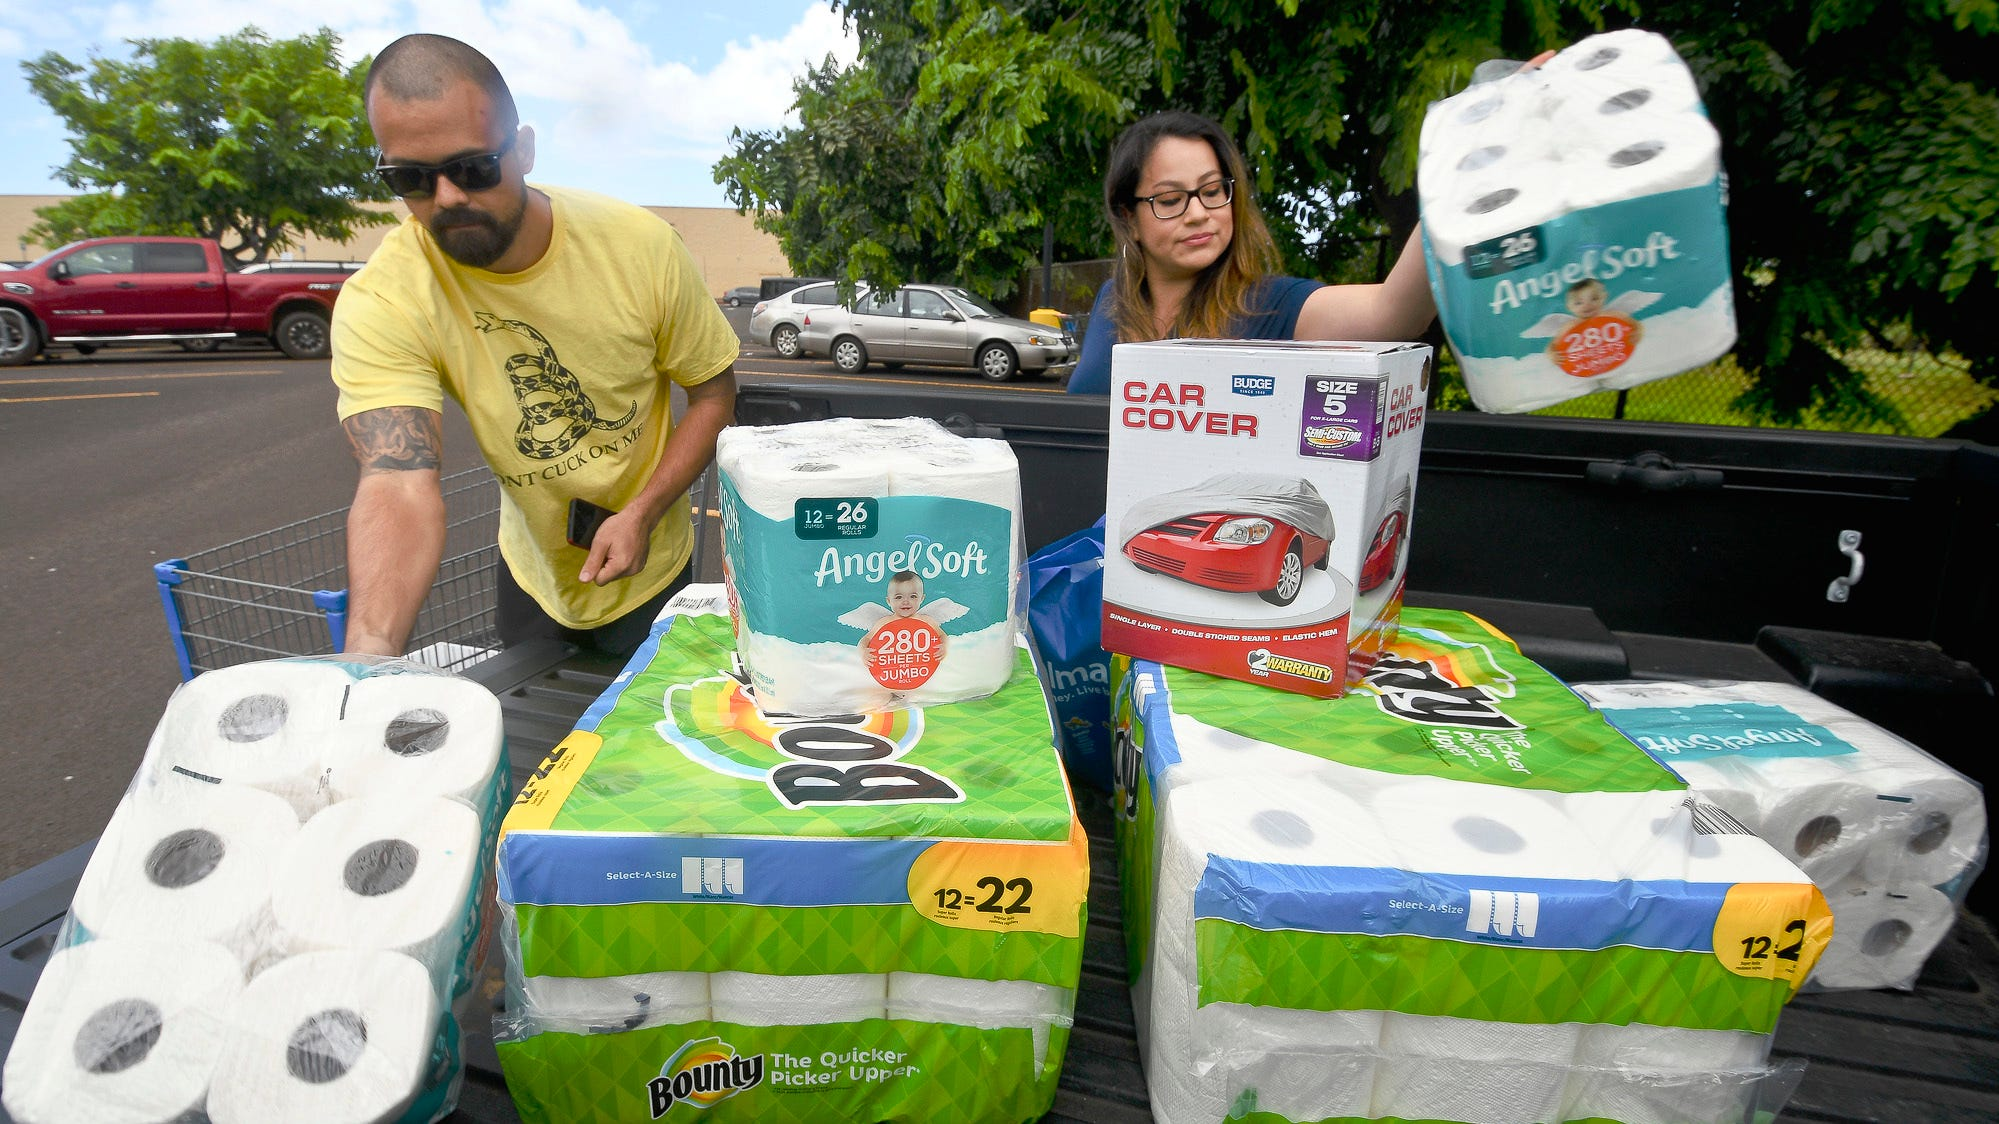 Bryce and Dom Boeder of Waimea, Kauai, load their truck with storm supplies in the parking lot of a Walmart store in Lihue, on the island of Kauai, Hawaii.